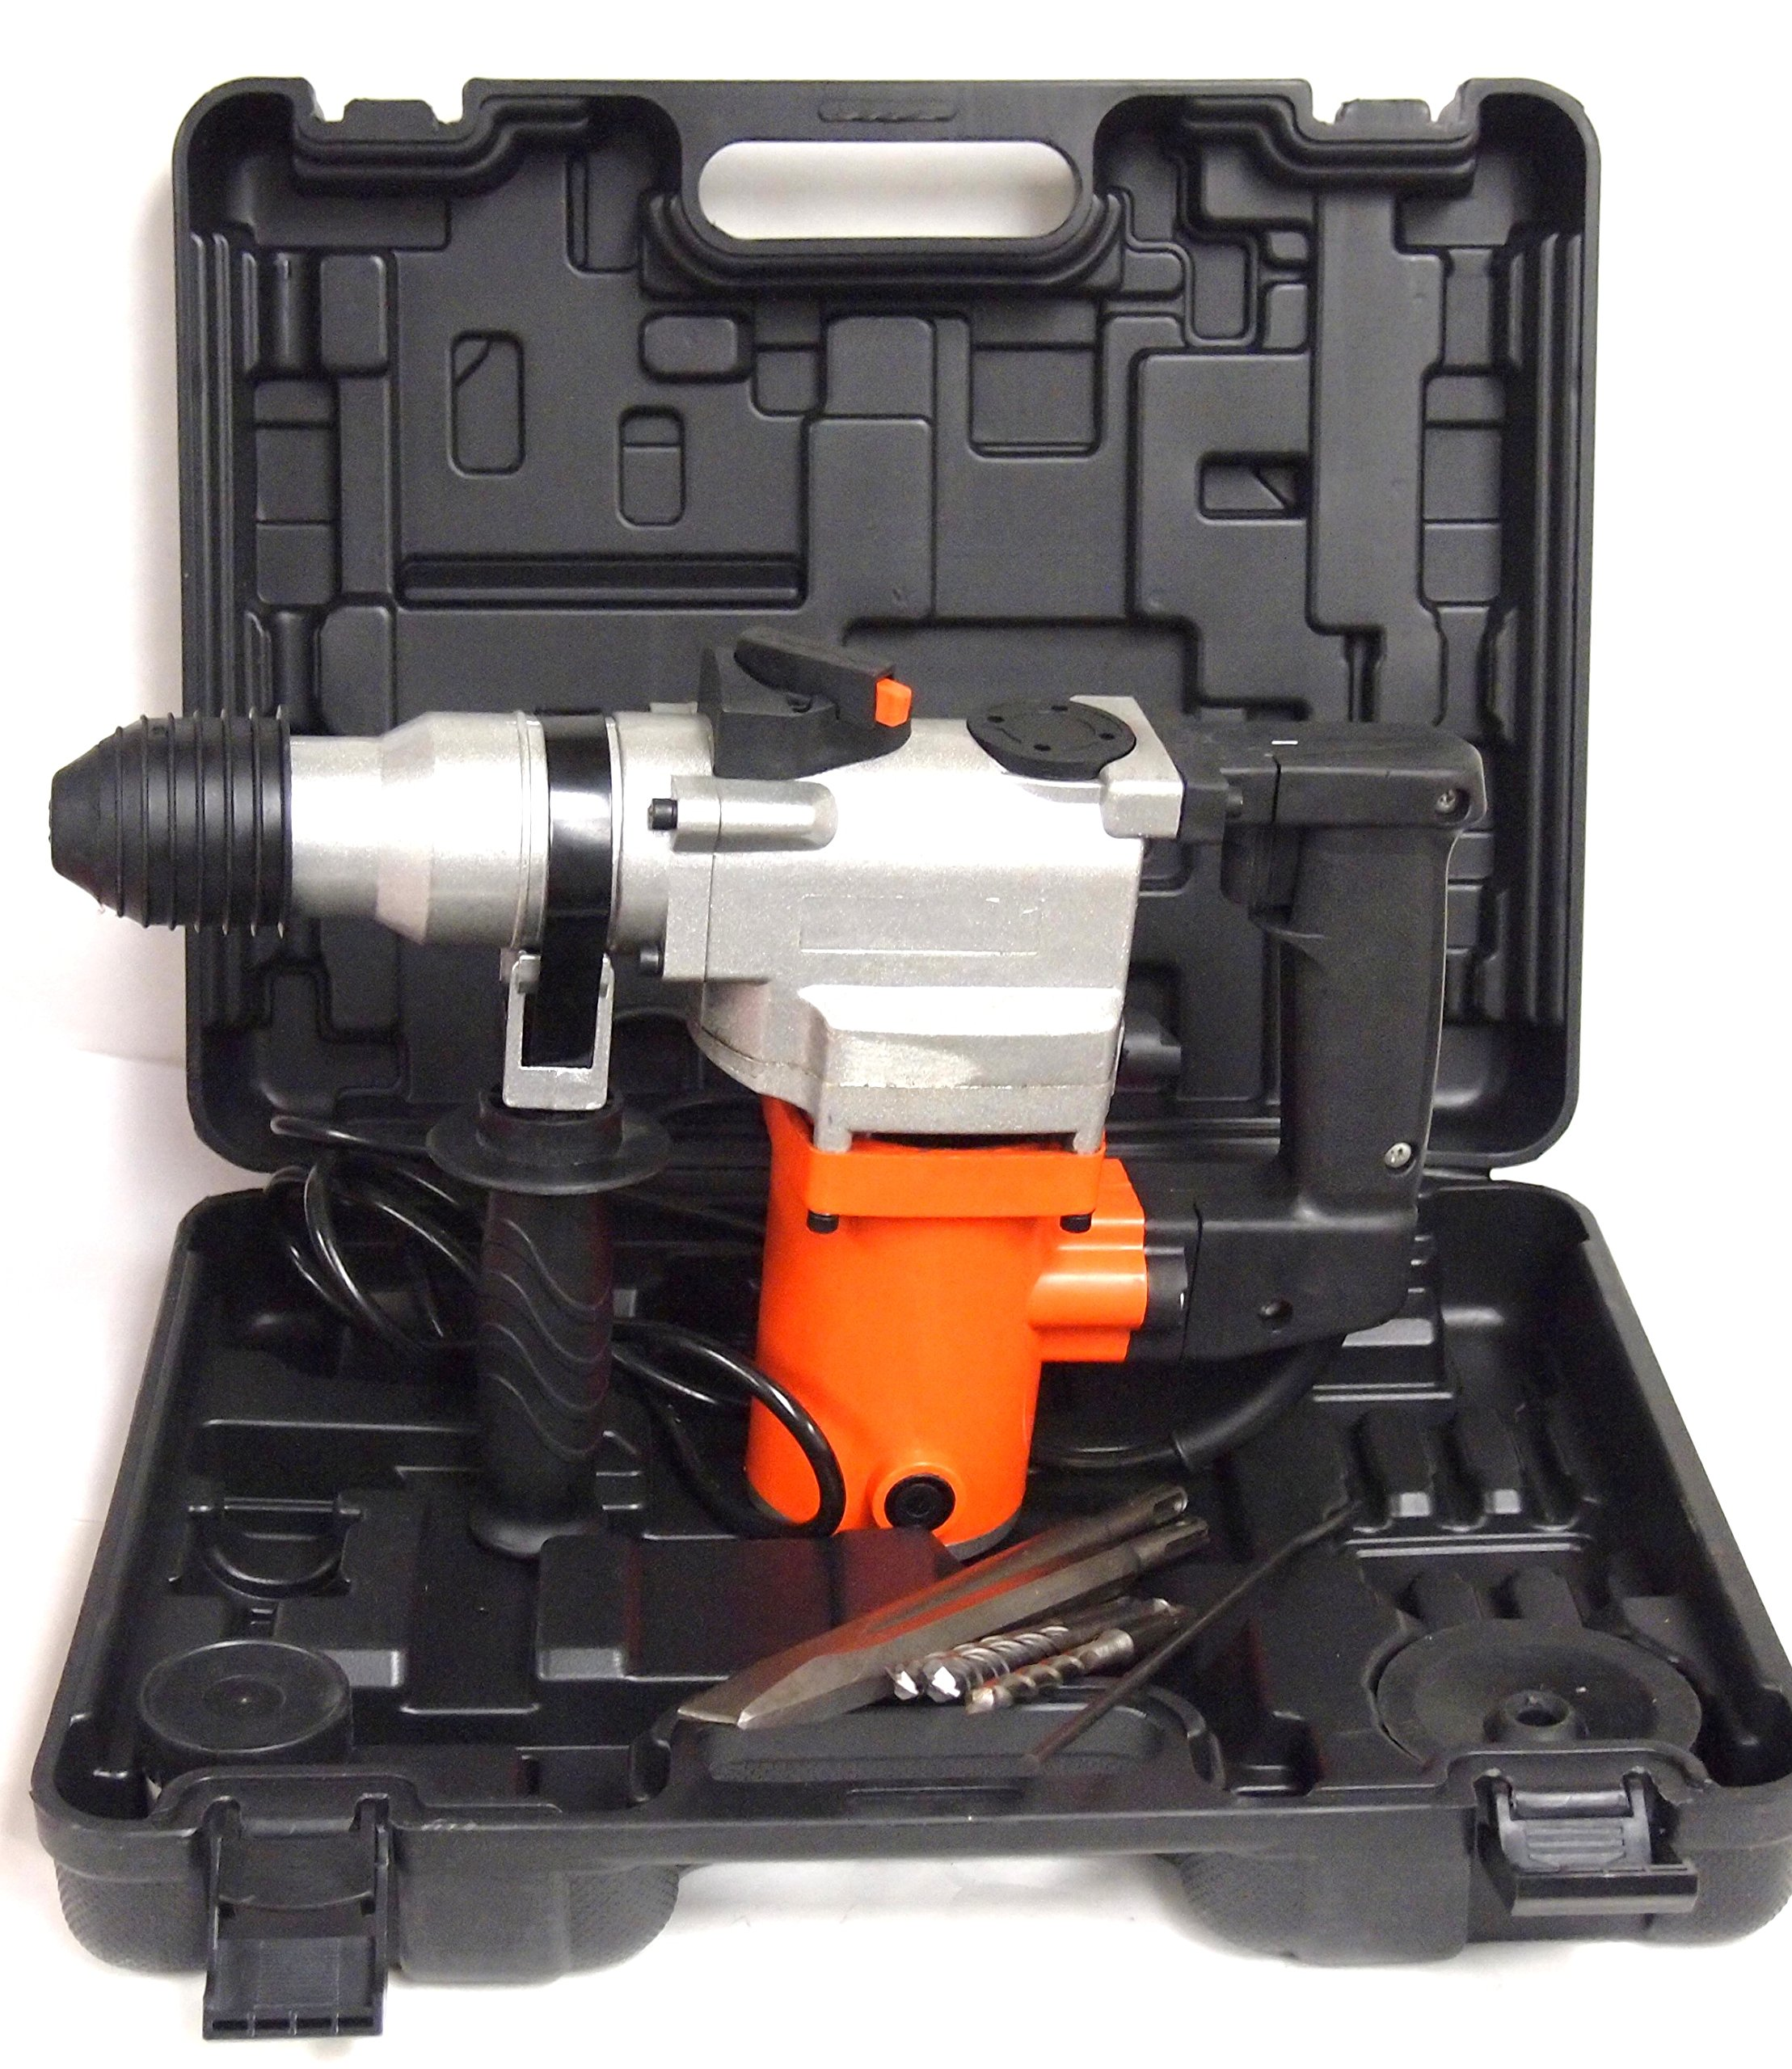 1'' SDS Plus Rotary Hammer Drill 3 Functions